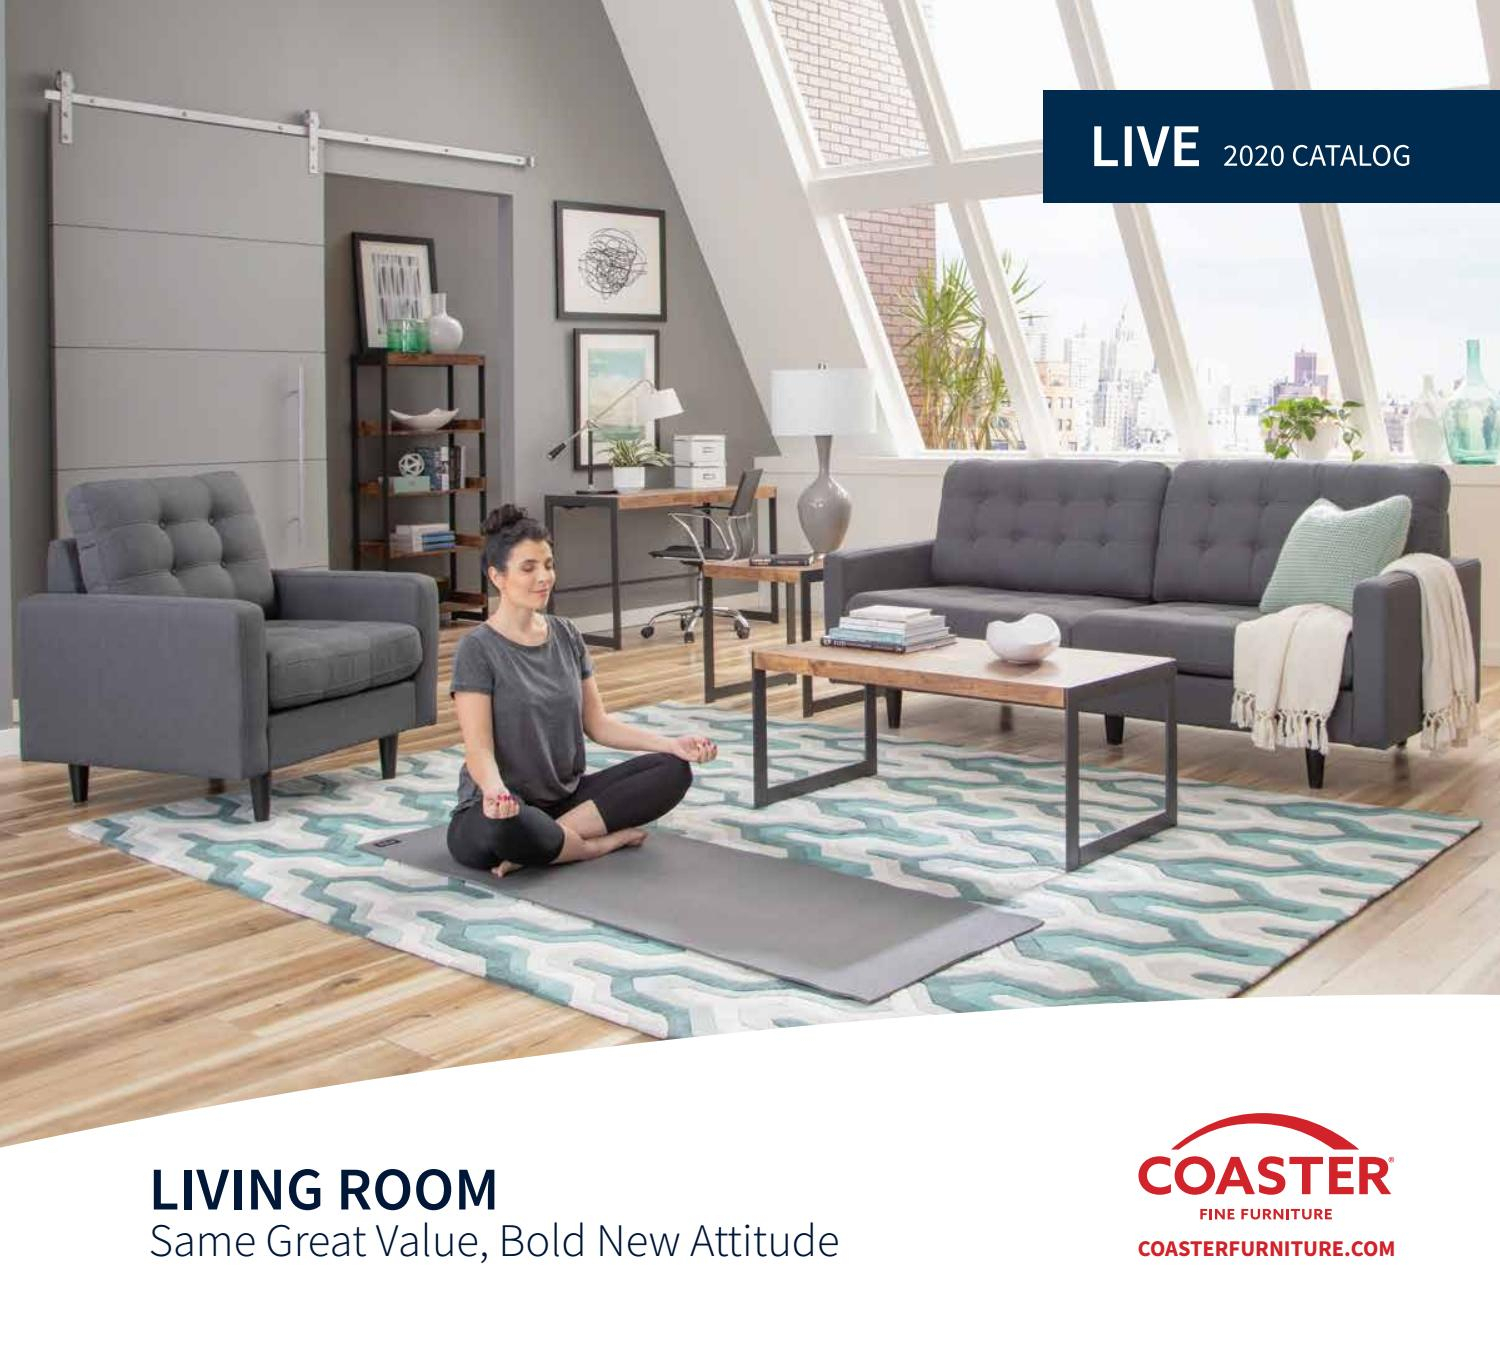 2020 Coaster Catalog Livecoaster Company Of America – Issuu Pertaining To Carbon Loft Ariel Rocking Chairs In Espresso Pu And Walnut (View 15 of 20)